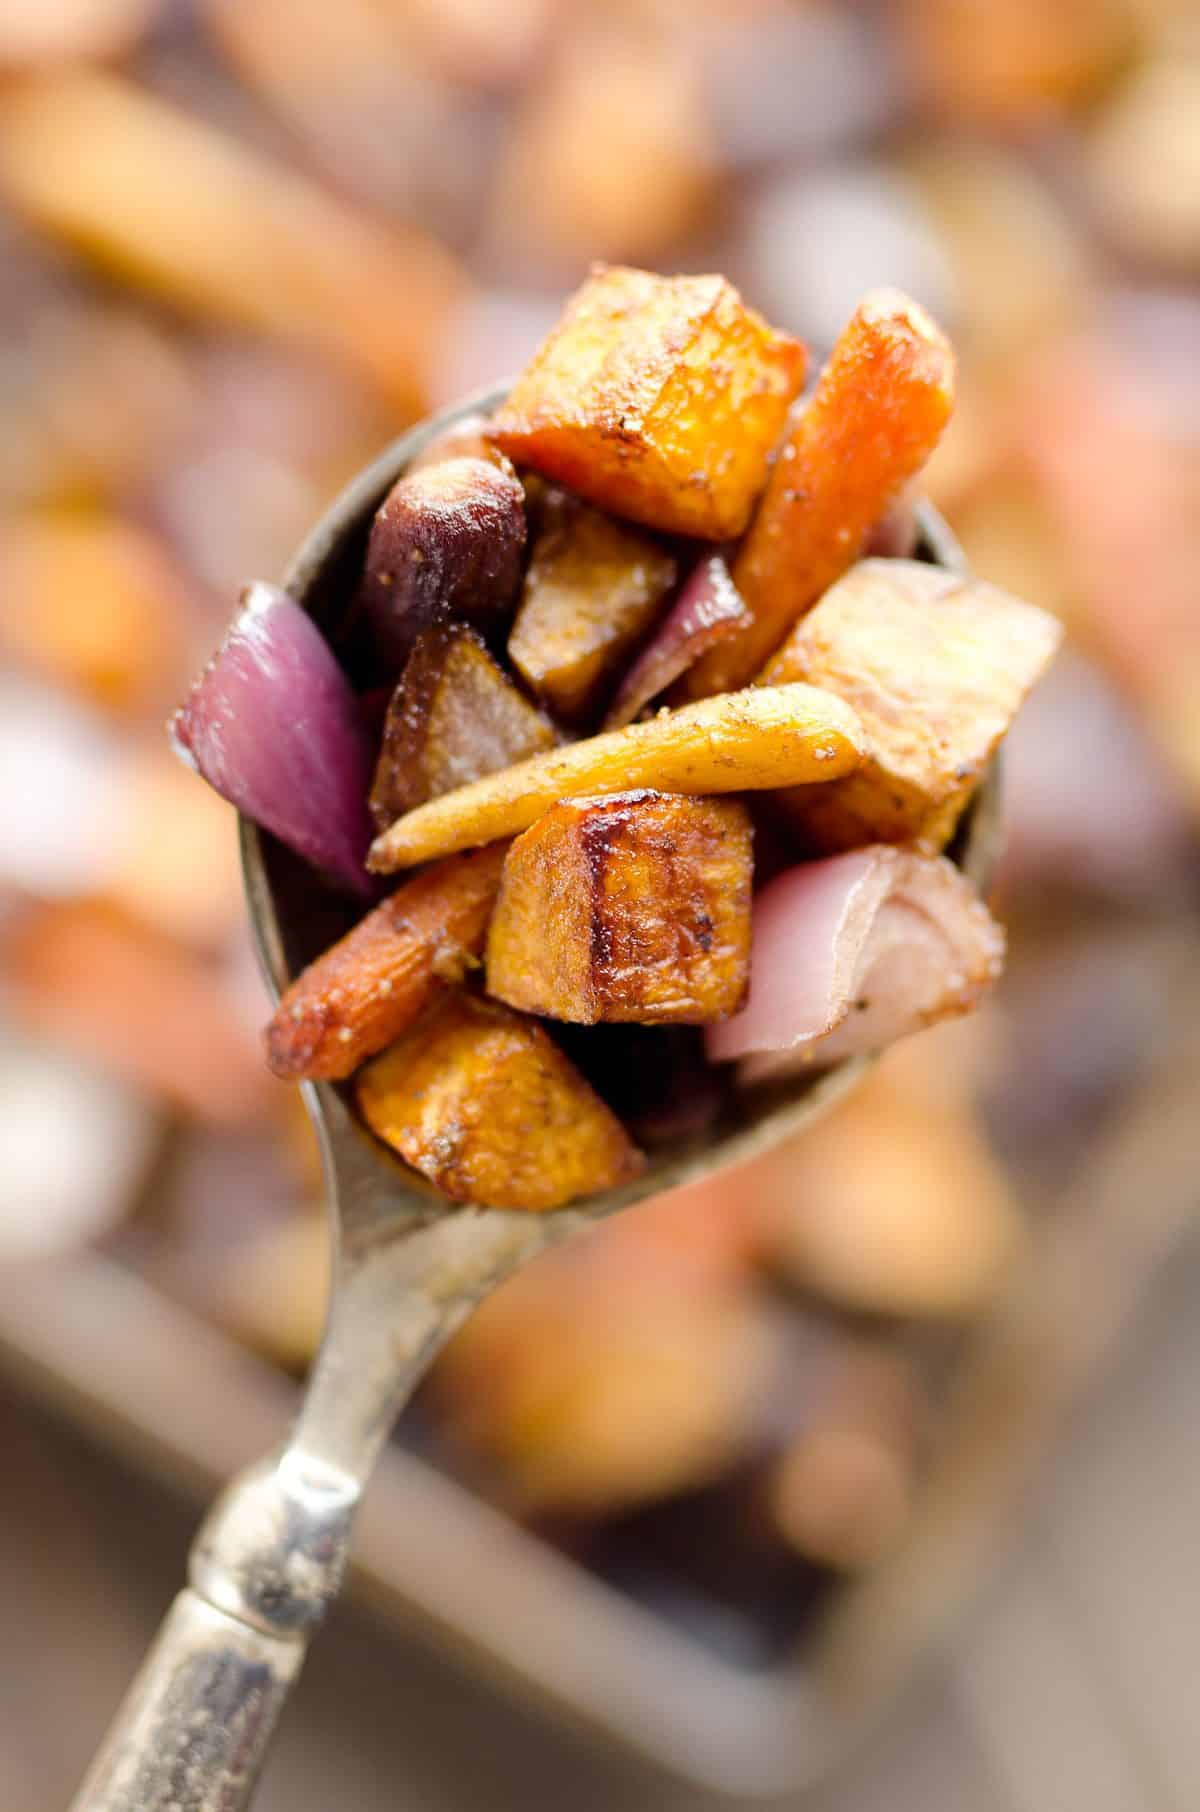 Balsamic Dijon Roasted Root Vegetables is an easy and healthy side dish bursting with tangy balsamic flavor and loaded with sweet potatoes, carrots and onions.